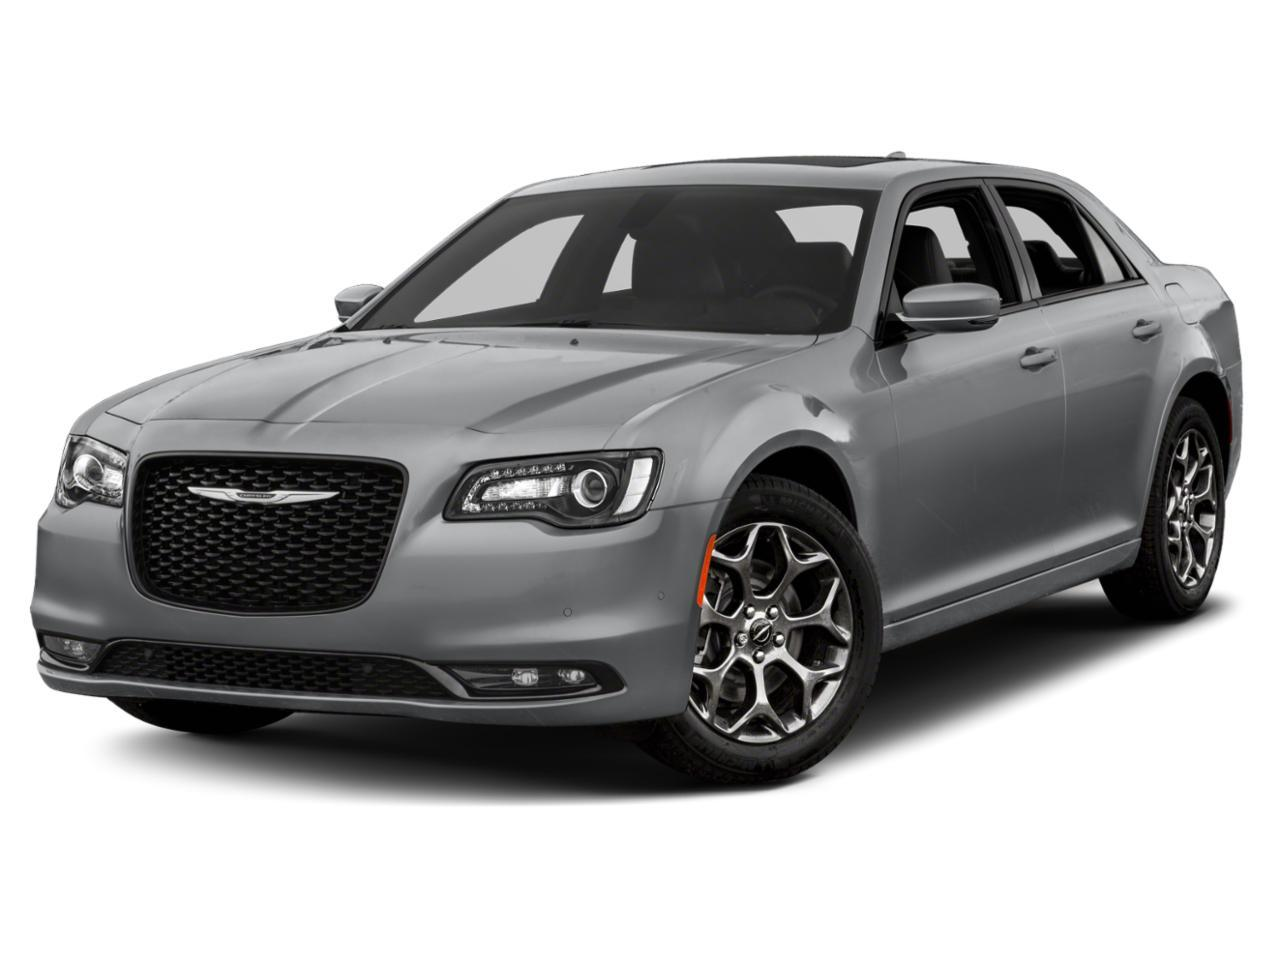 2018 Chrysler 300 Vehicle Photo in Mission, TX 78572